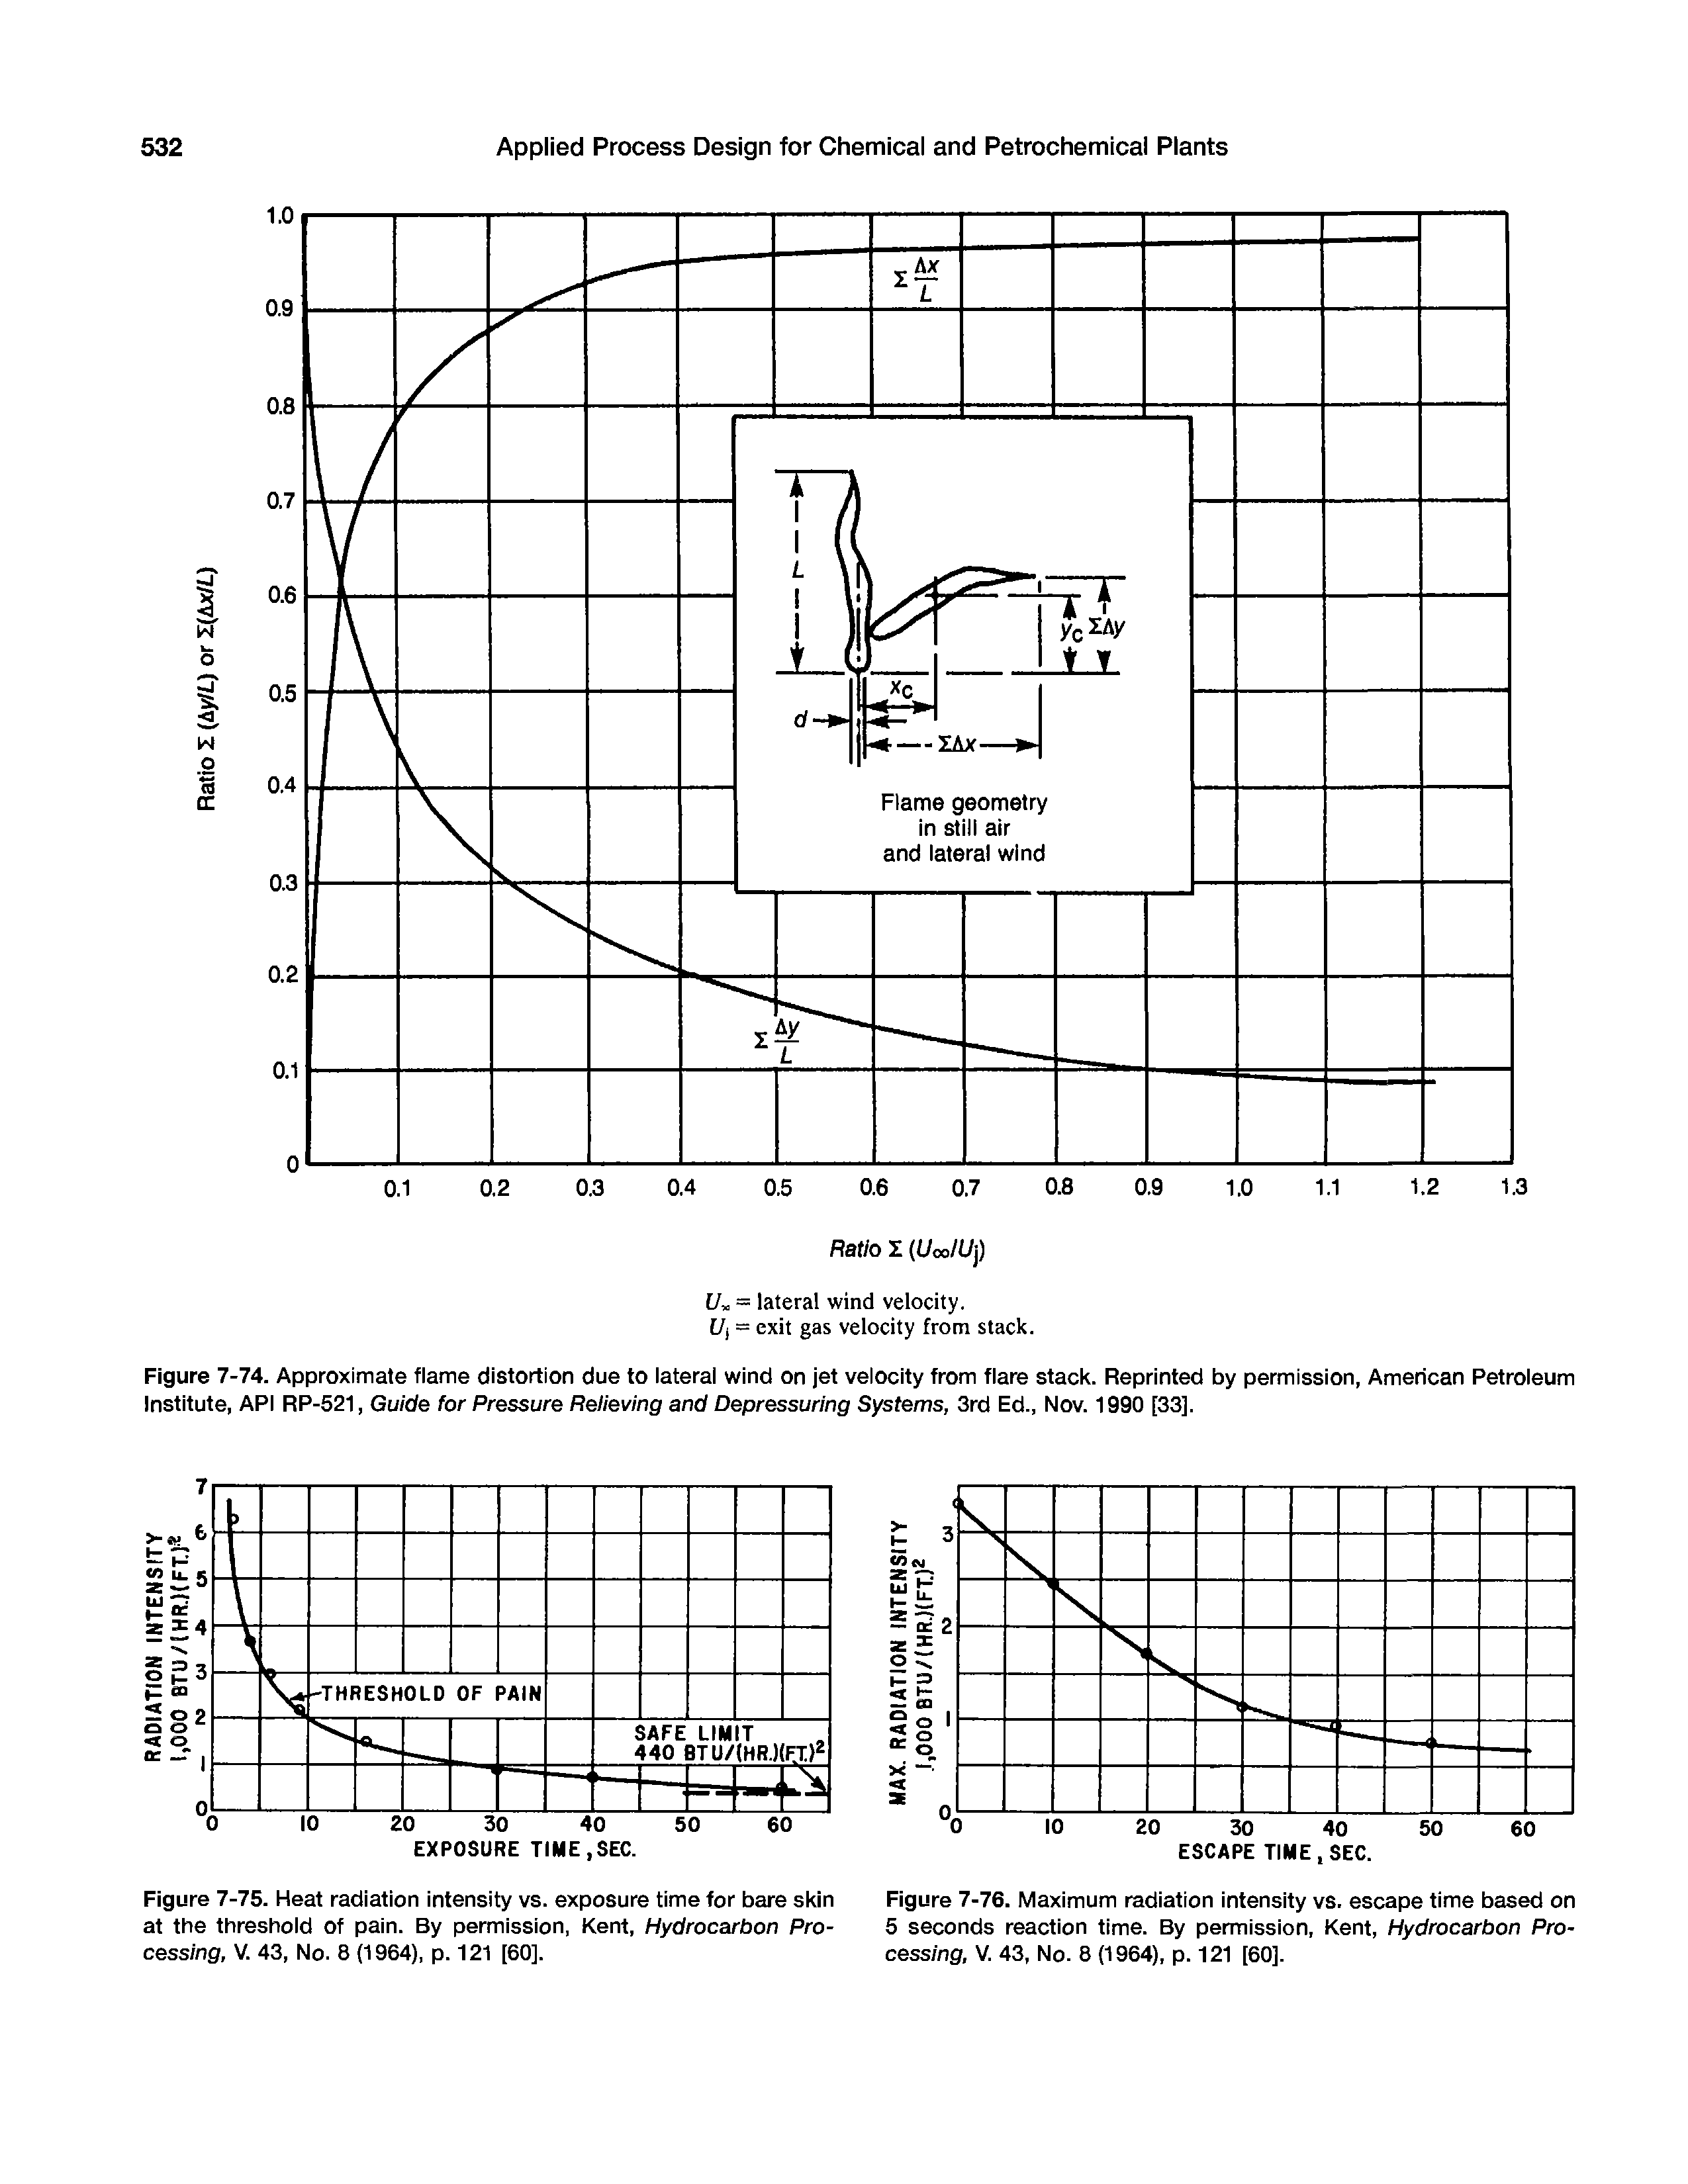 "Figure 7-75. <a href=""/info/heat_radiation"">Heat radiation</a> intensity vs. <a href=""/info/of_exposure_times"">exposure time</a> for bare skin at the threshold of pain. By permission, Kent, Hydrocarbon Processing, V. 43, No. 8 (1964), p. 121 [60]."